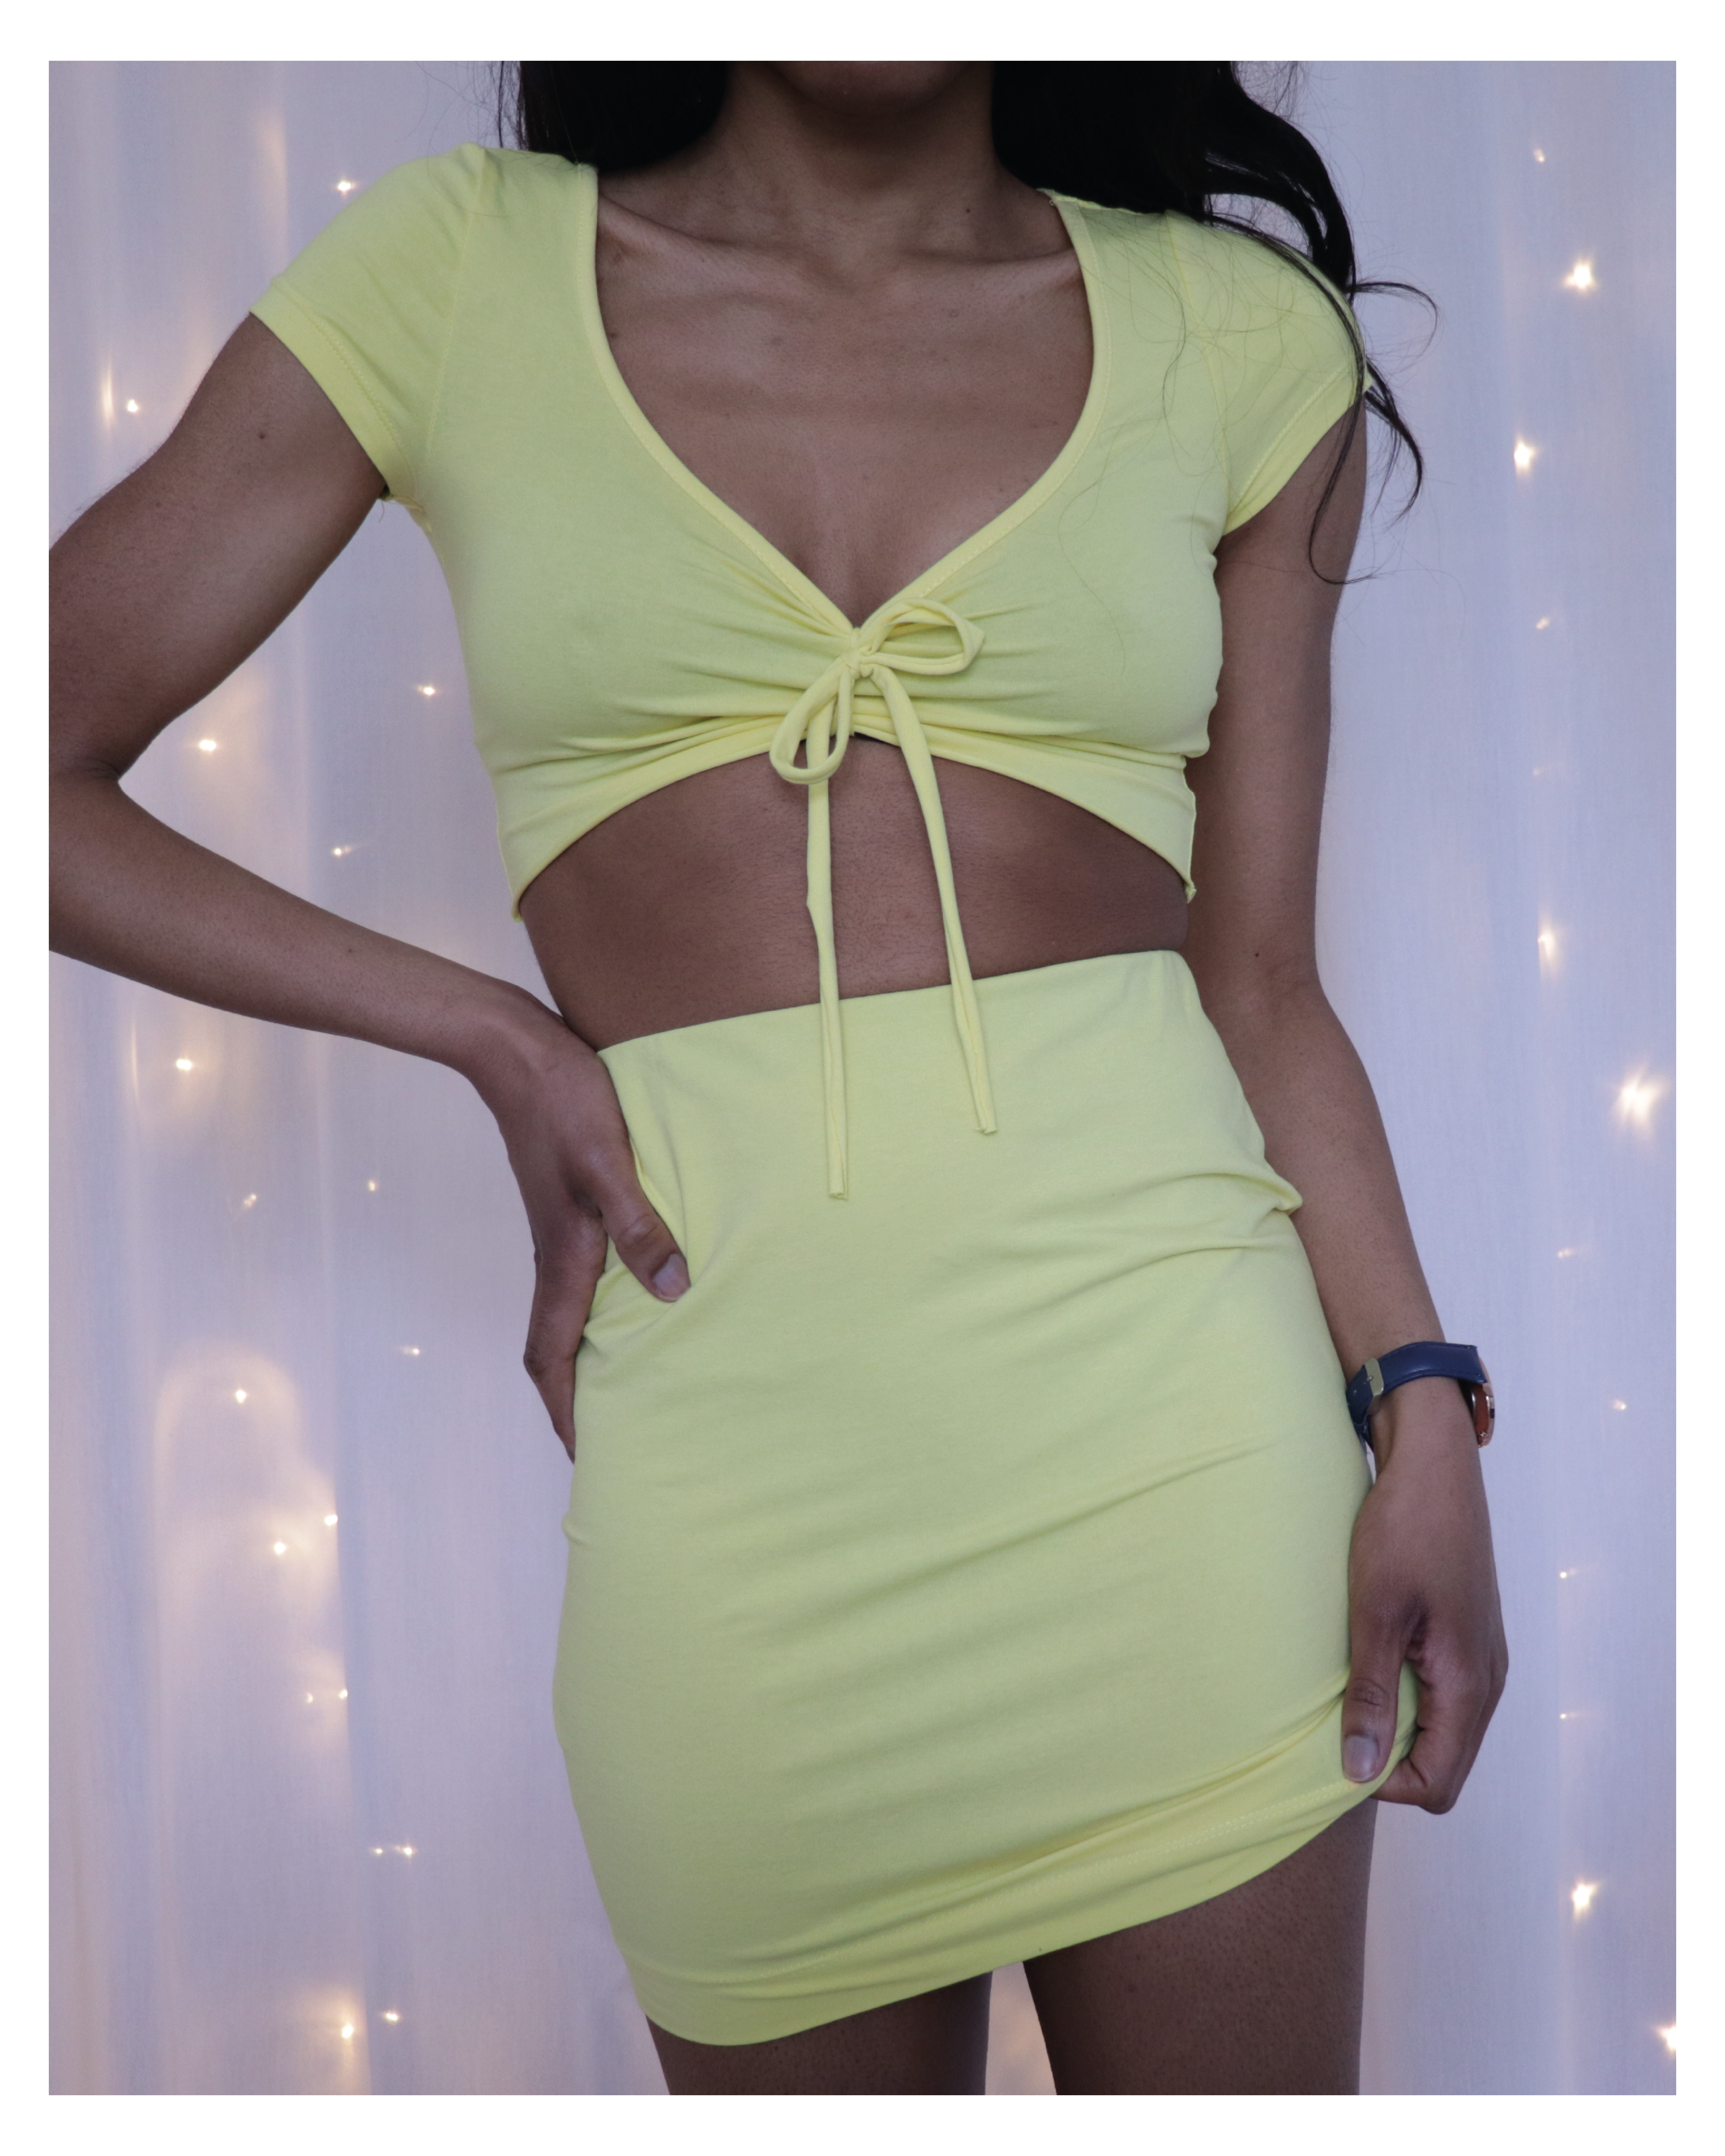 Diy Two Piece From Dress Diy Clothing Set Sewing Tutorial Making A Two Piece Set From An Old Dress Dress Sewing Tutorials Upcycle Clothes Refashion Clothes [ 5961 x 4770 Pixel ]